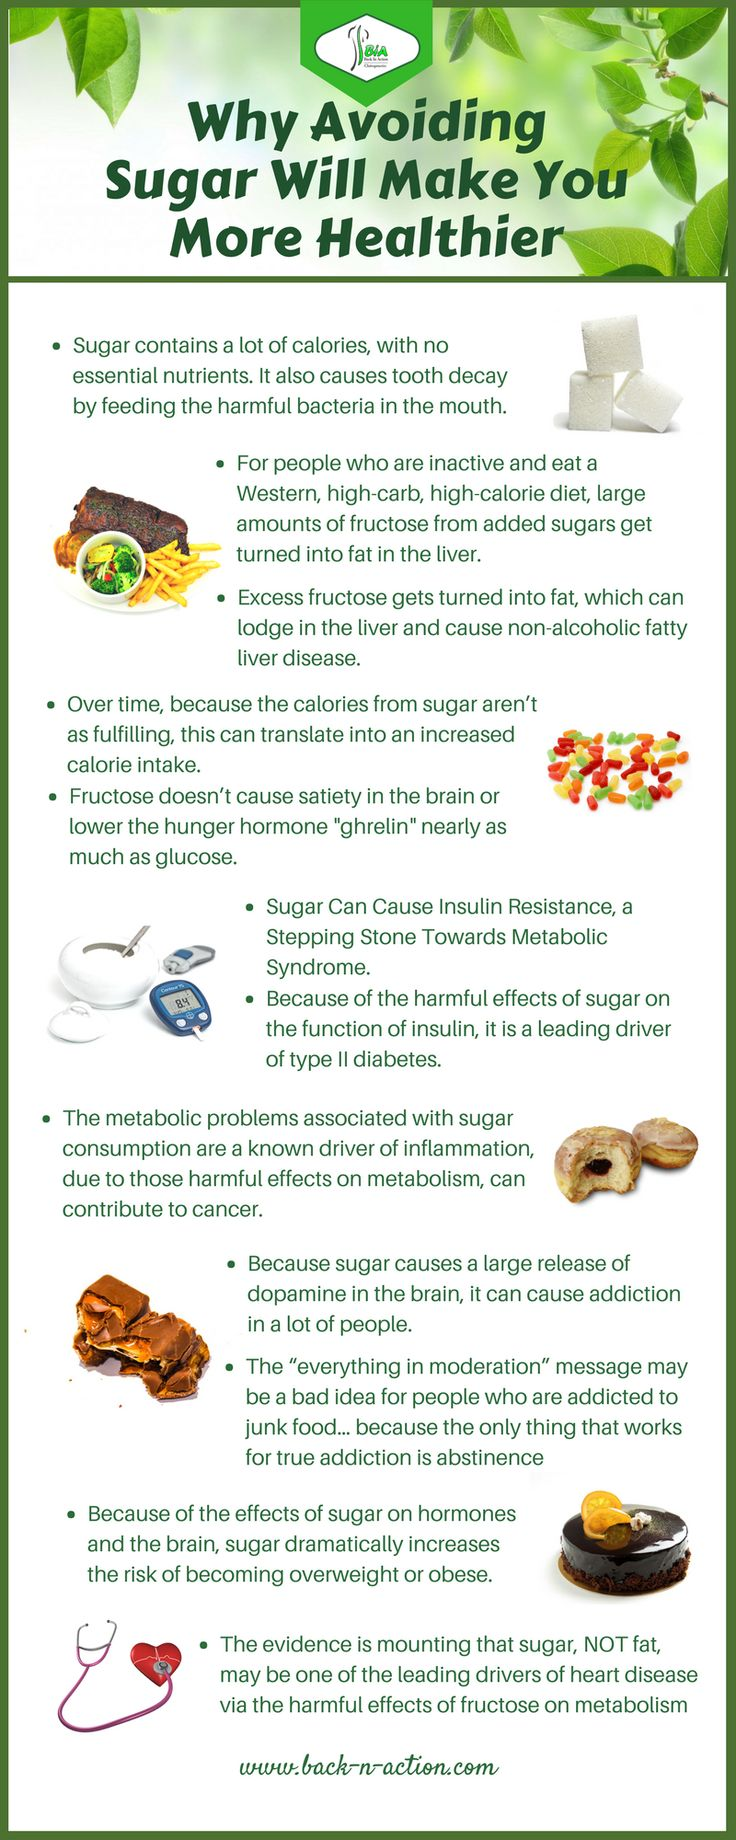 """Sure, I like ice cream, but when you keep a healthy lifestyle, it's: Do you prefer sweets and crappy food, or do you prefer to have a nice body? It depends on what you want more. "" ~Tim Howard    Read about what sugar substitutes to avoid and what sugar substitutes to use here, http://www.back-n-action.com/avoid-sugar-make-you-more-healthier/"